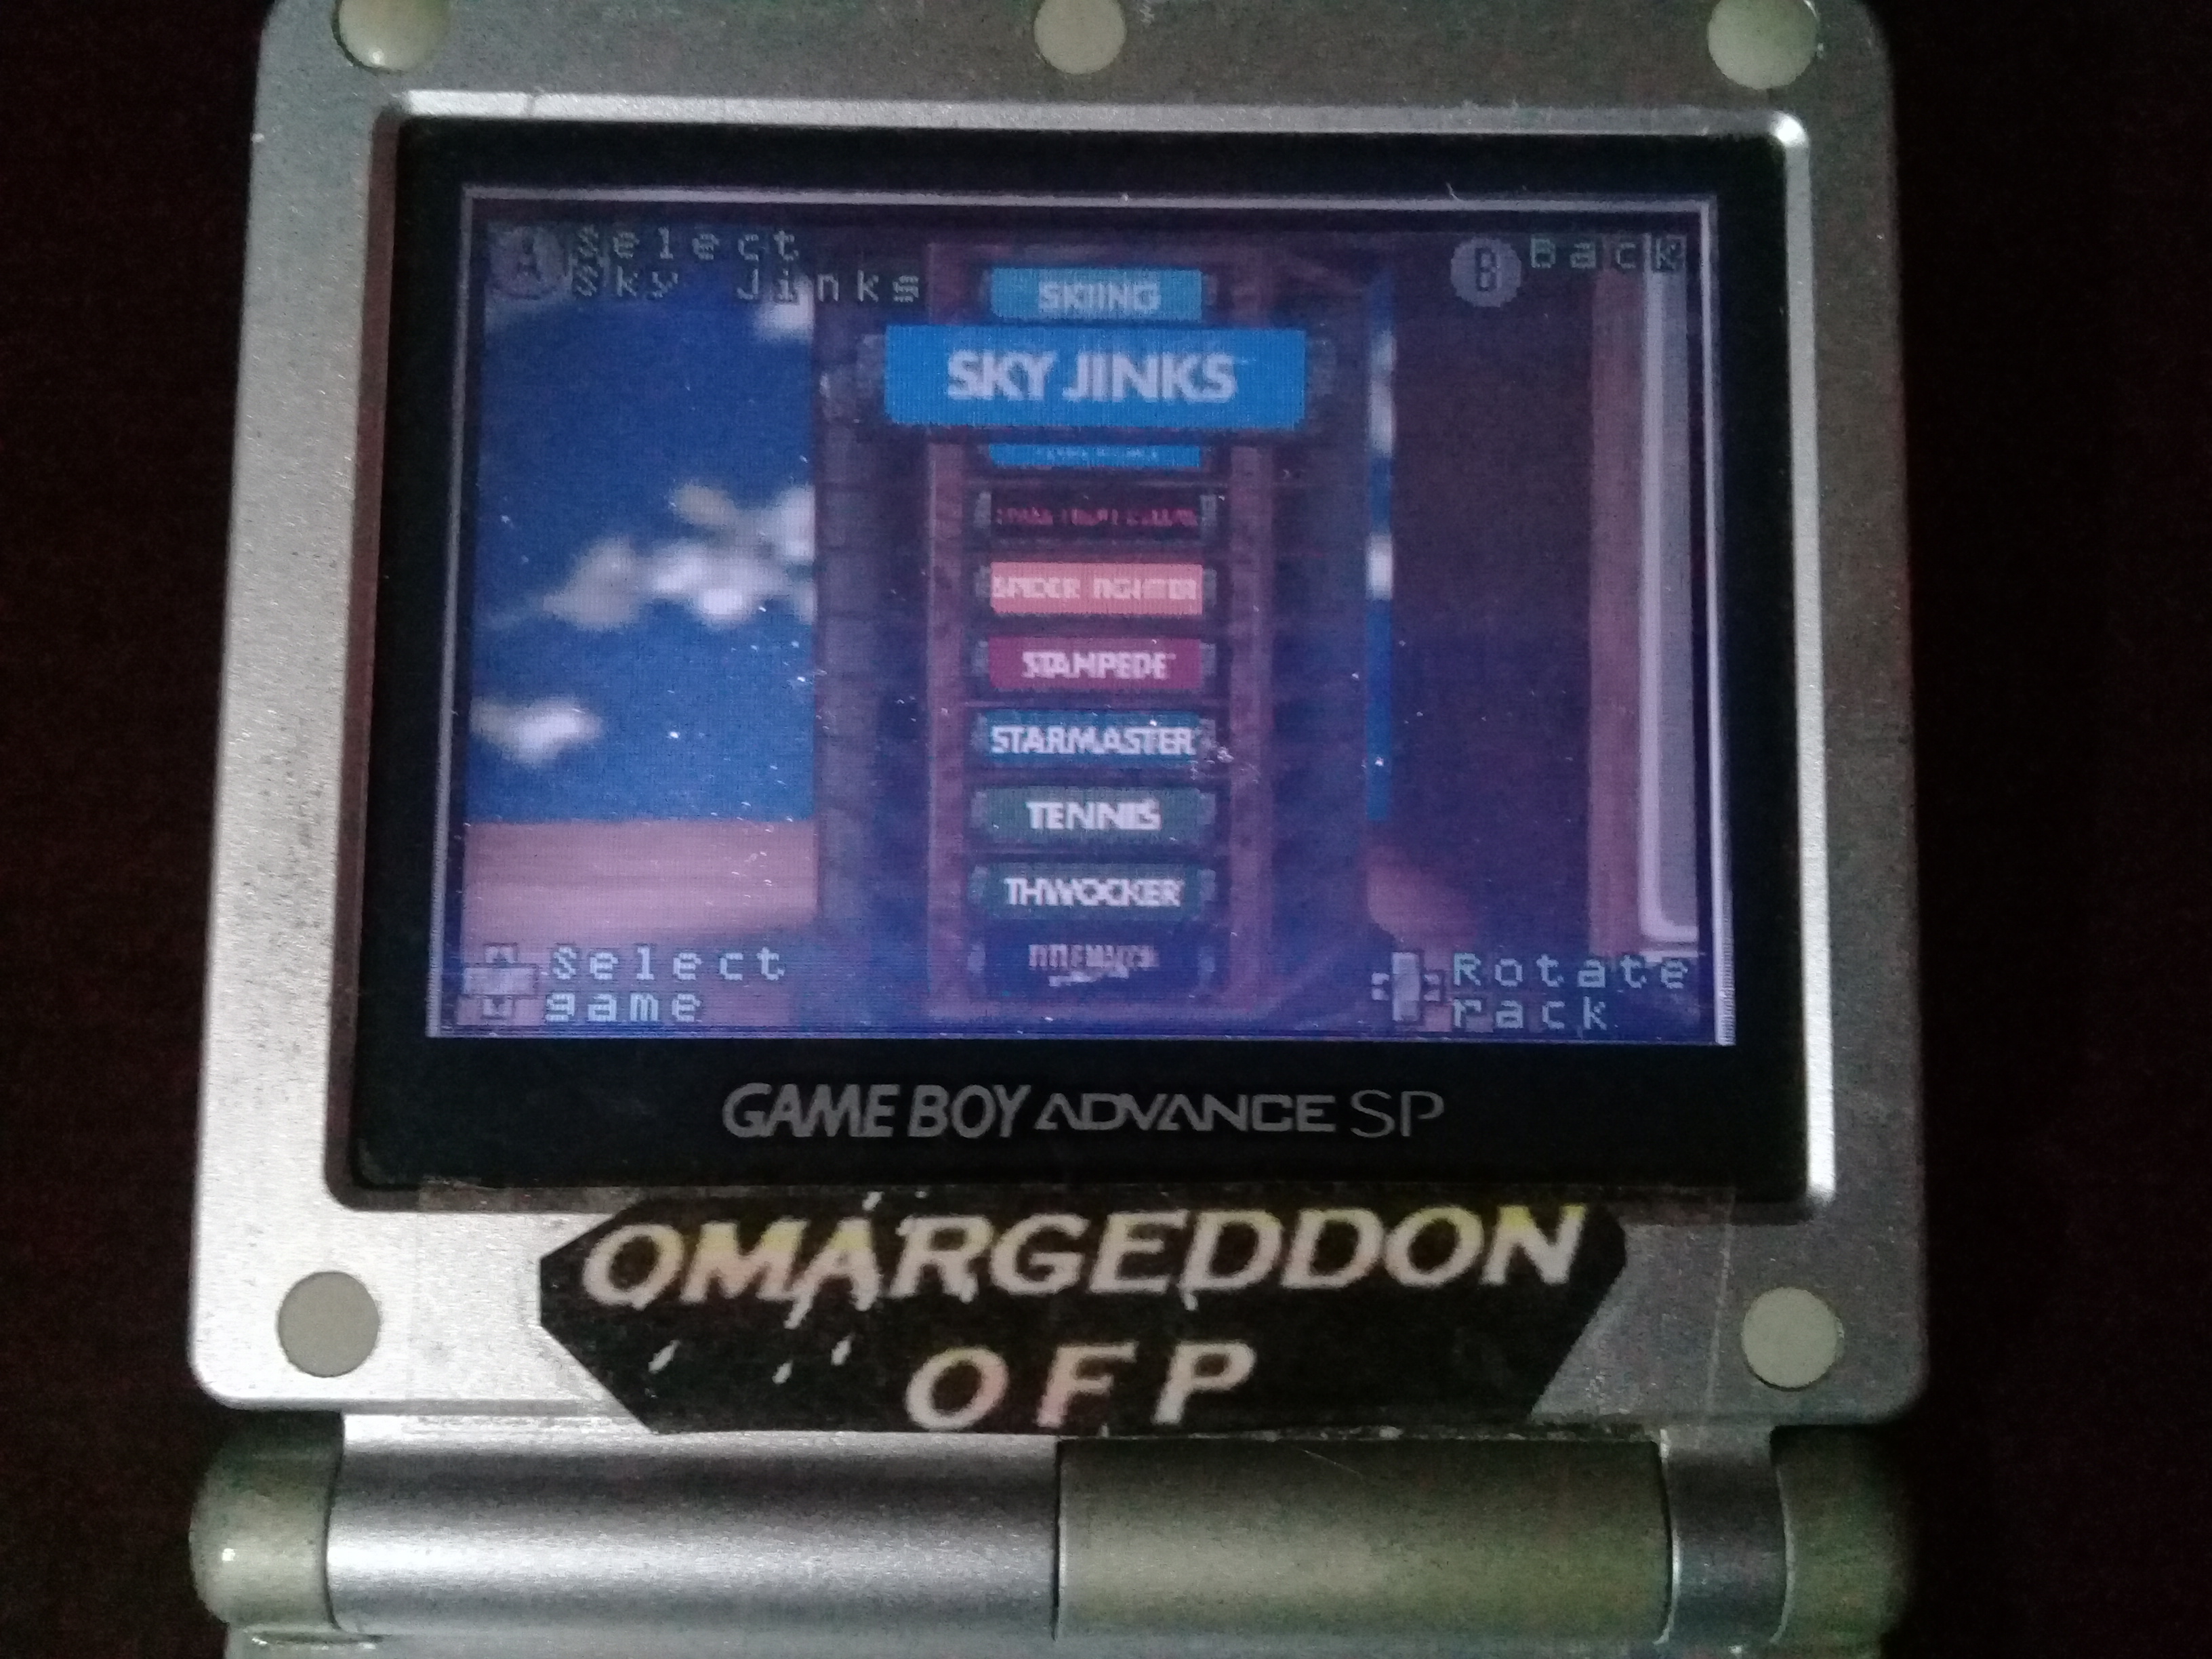 omargeddon: Activision Anthology: Sky Jinks [Game 1B] (GBA) 0:00:35.36 points on 2019-09-15 12:36:55